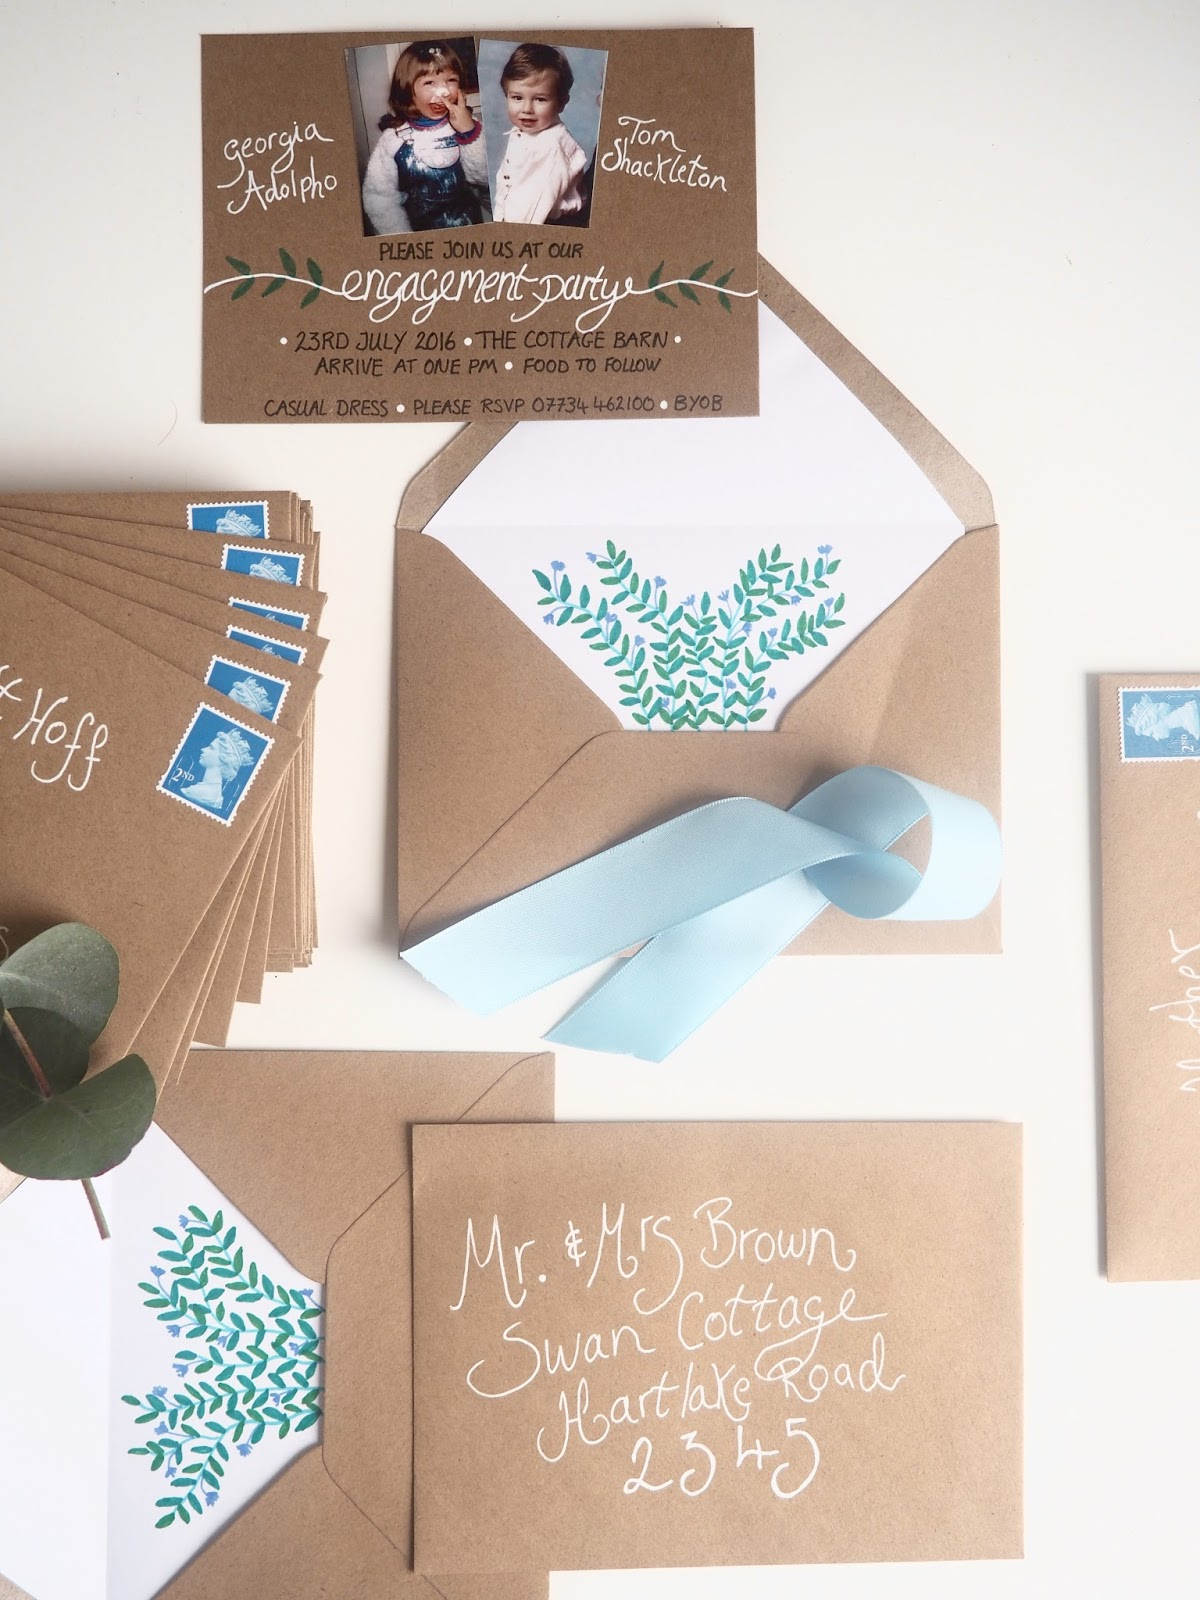 DIY Engagement Party Invitations